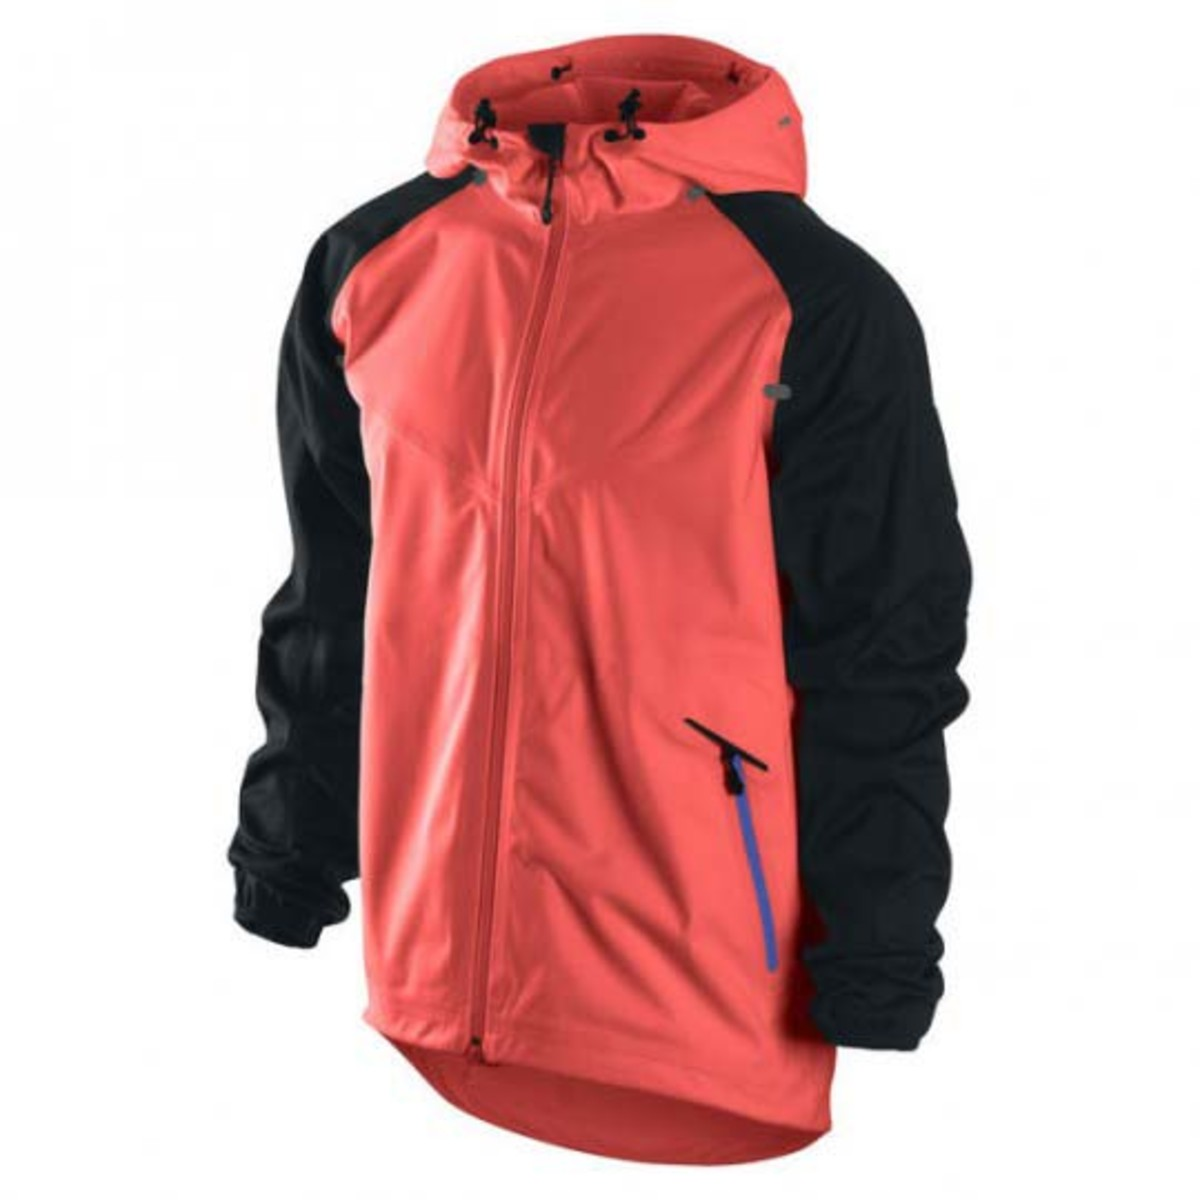 nike-sportswear-fall-2009-collection-08